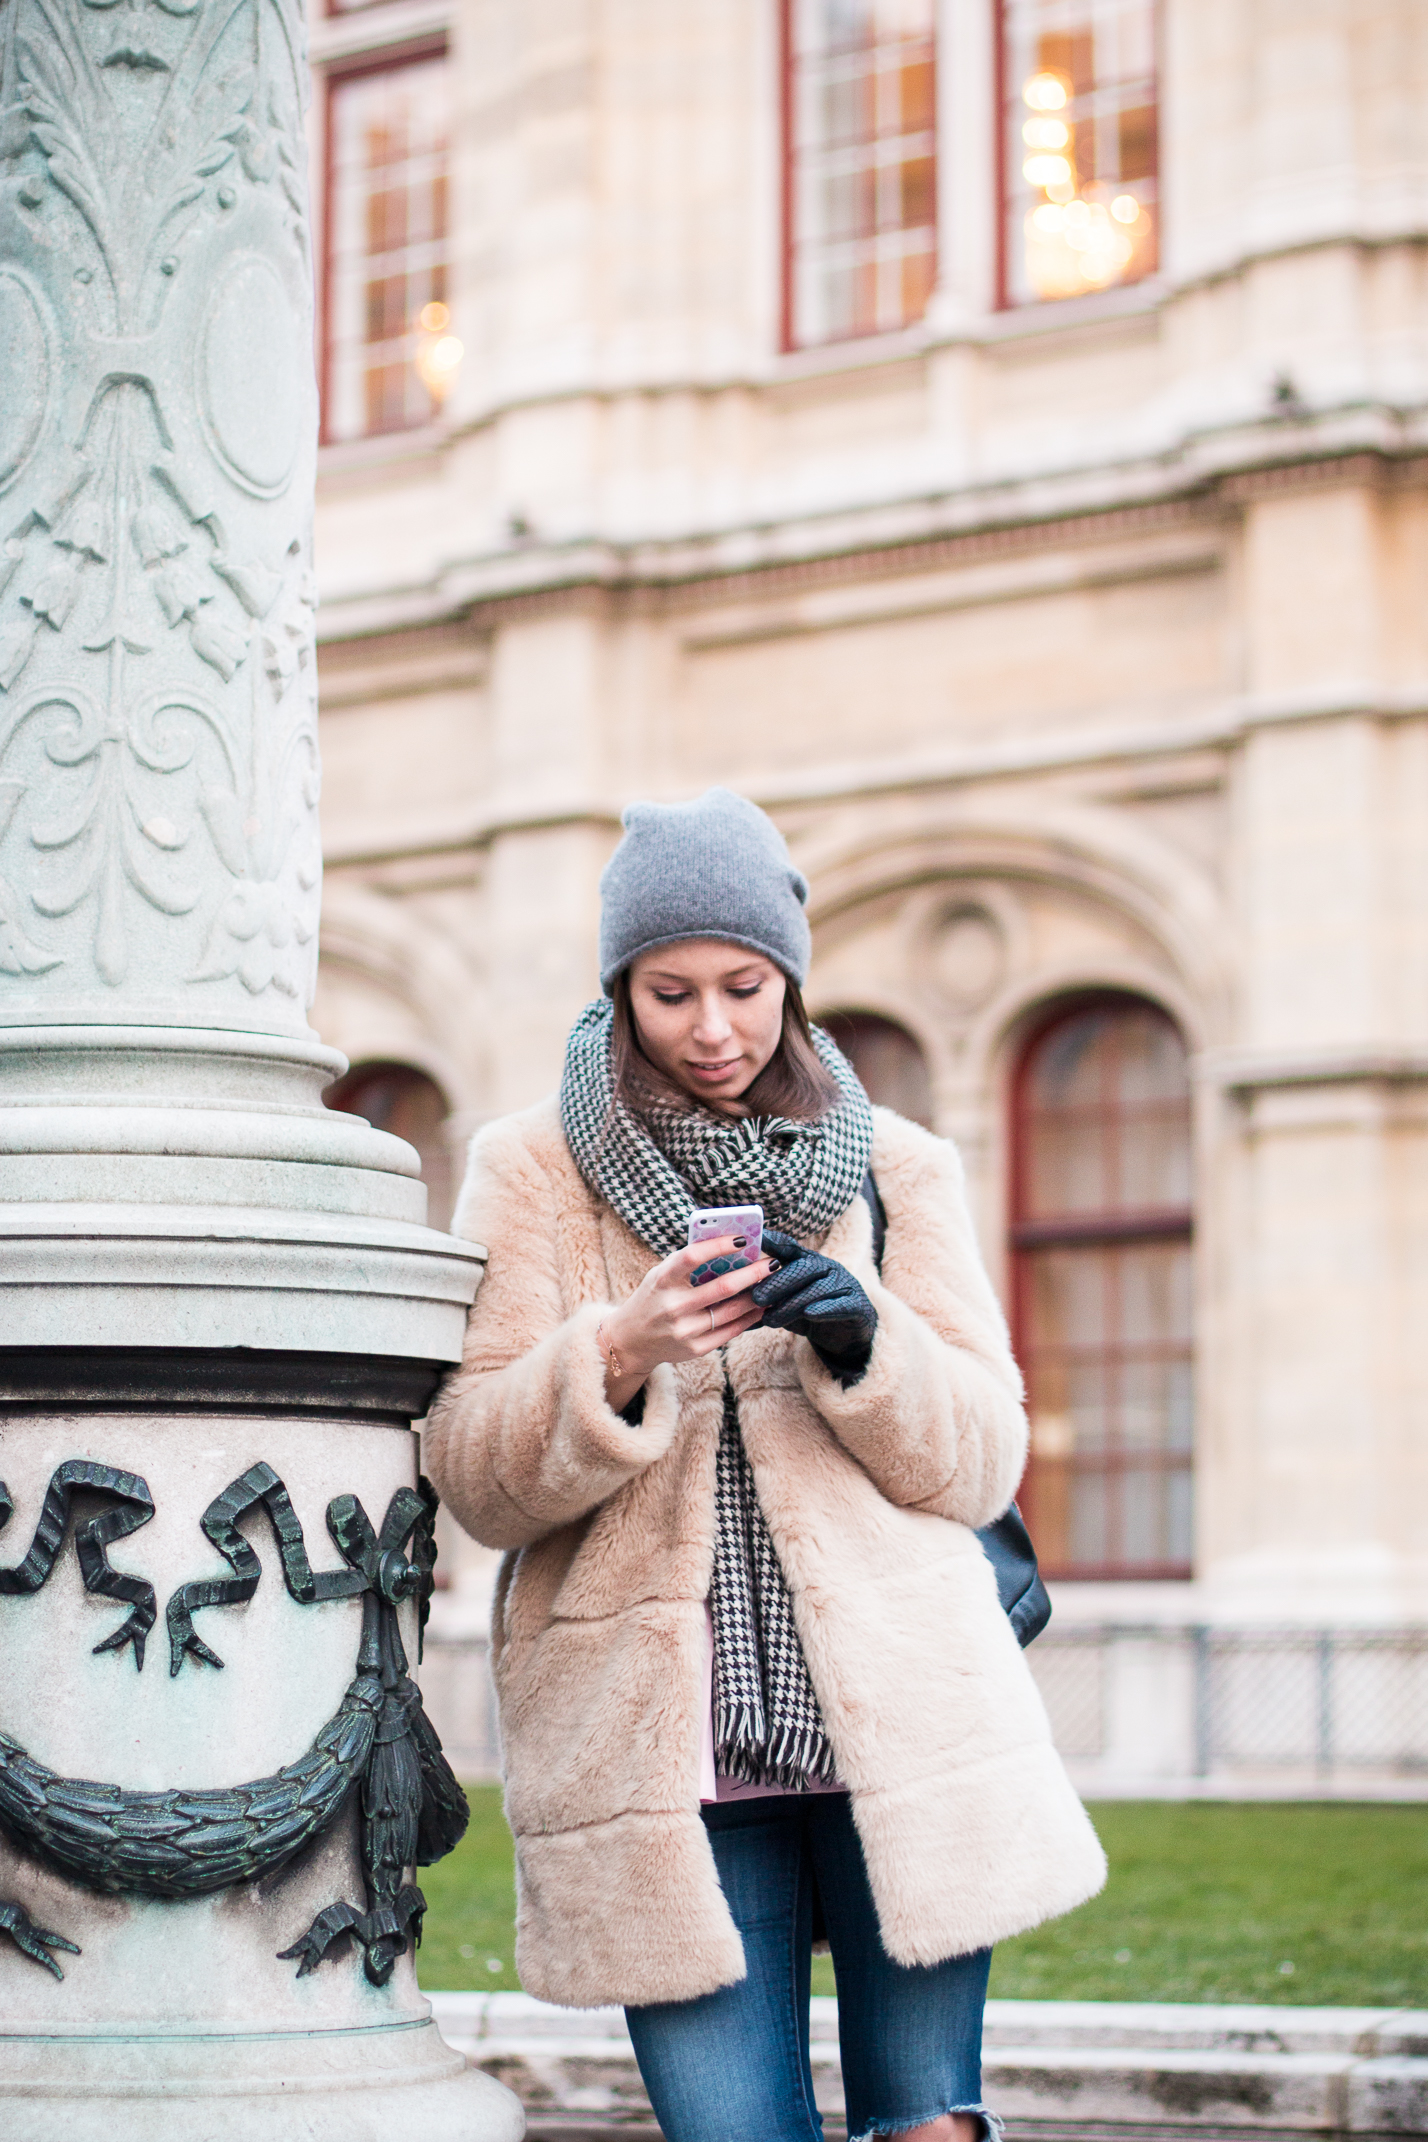 Out & About: SWISS #attentivenow Vienna | Love Daily Dose